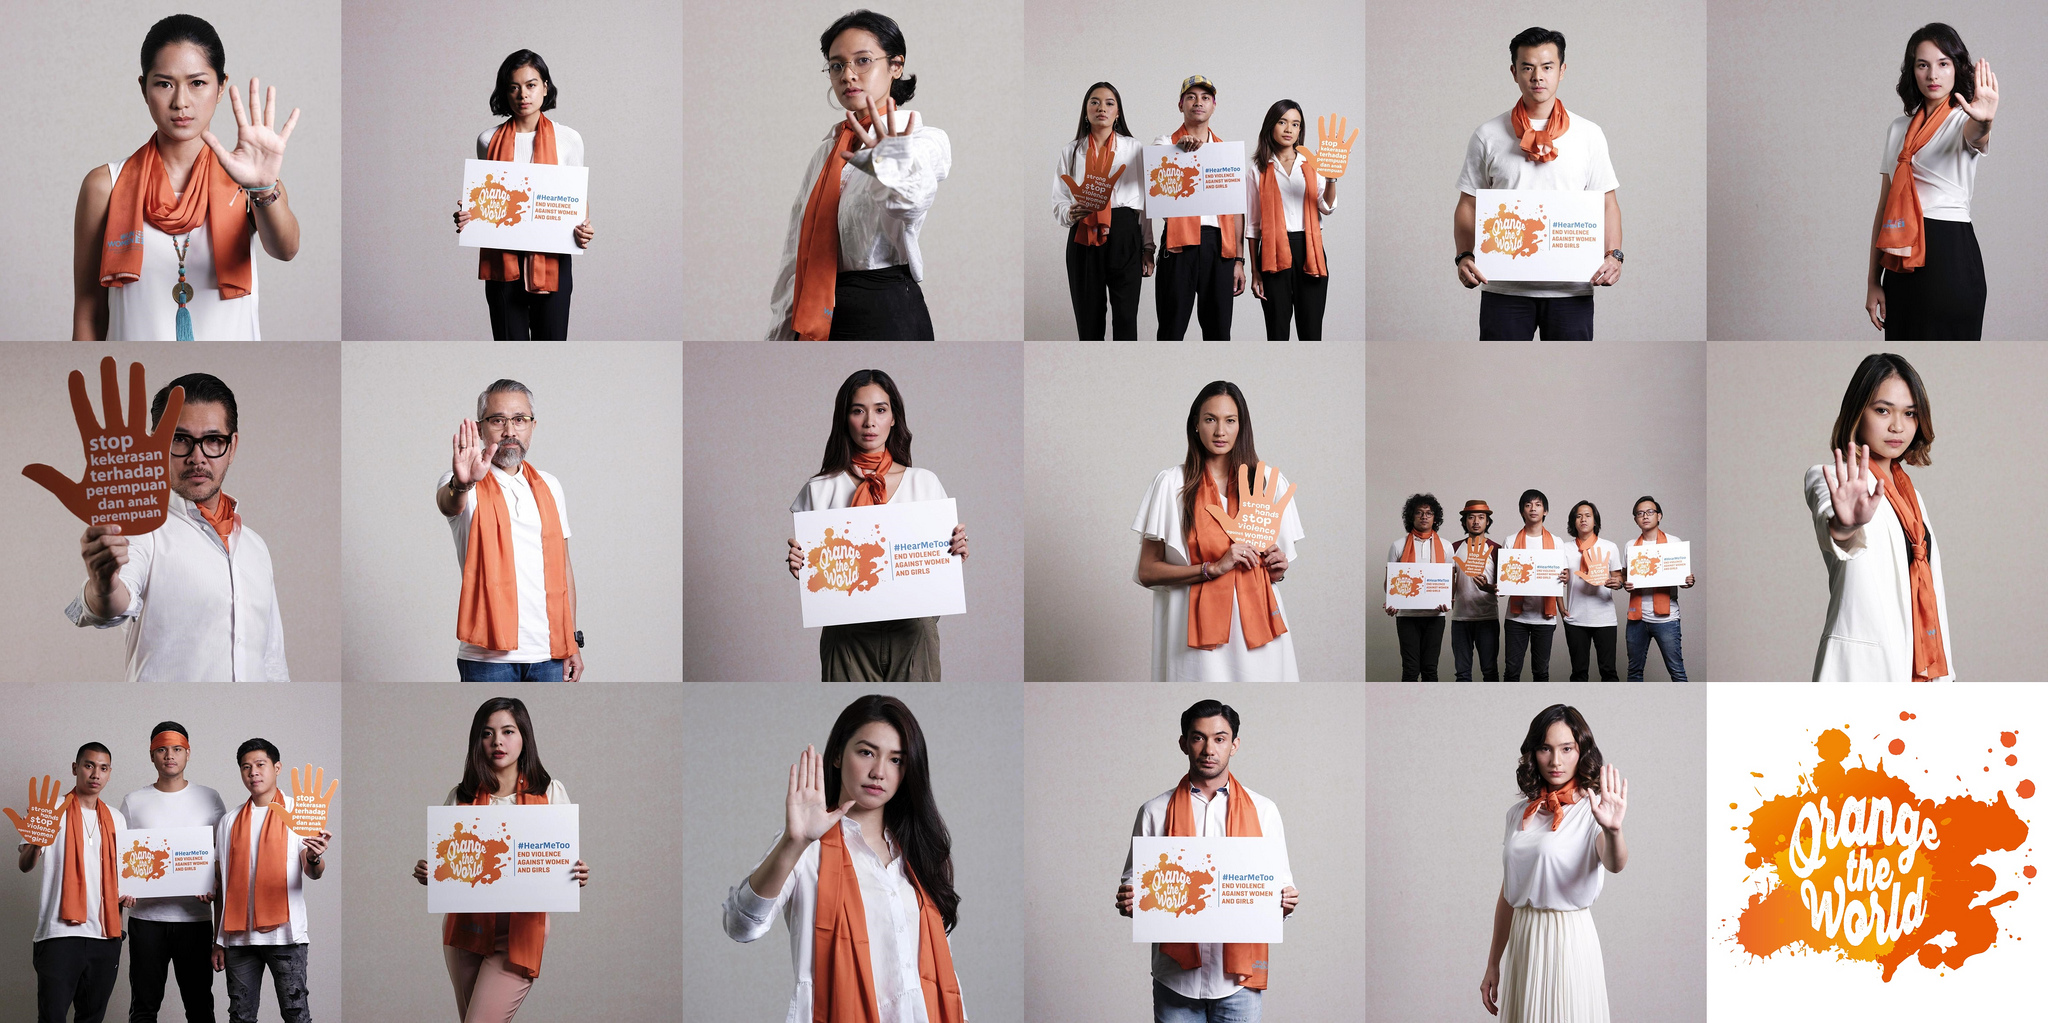 Indonesian Influencers calling for the elimination of violence against women in UN Women video for 16 Days of Activism